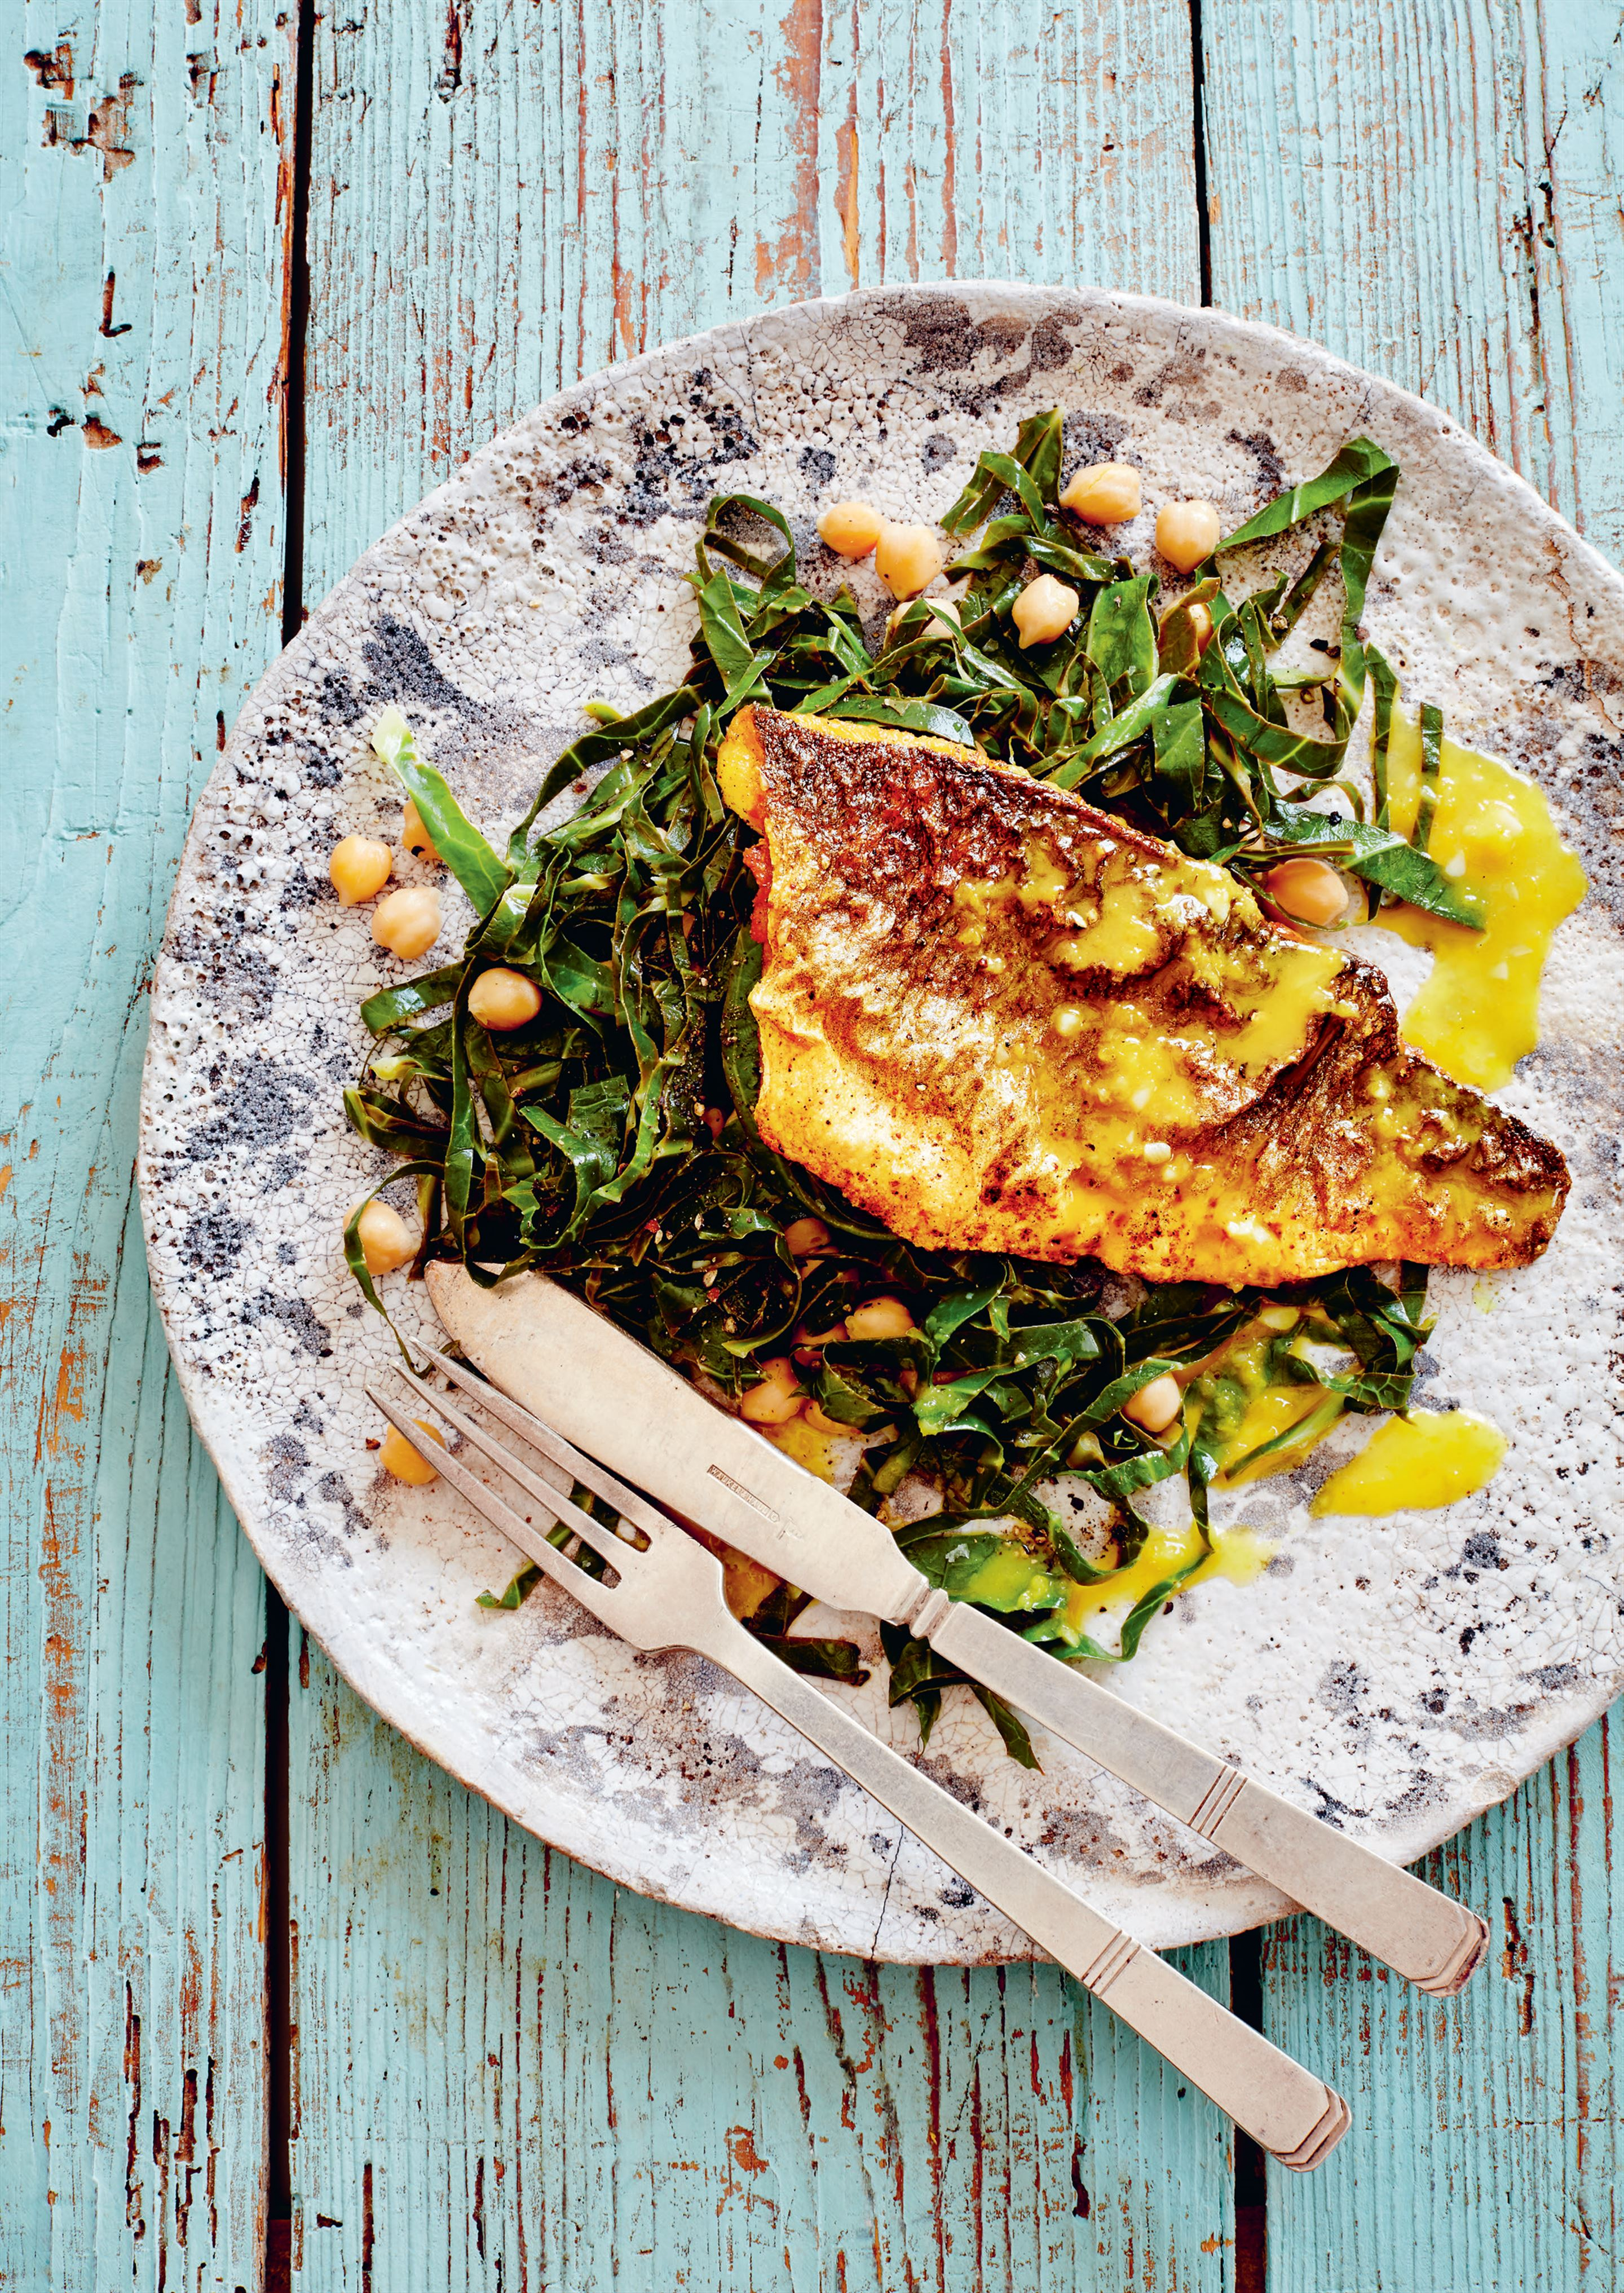 Spiced sea bass with citrus butter sauce